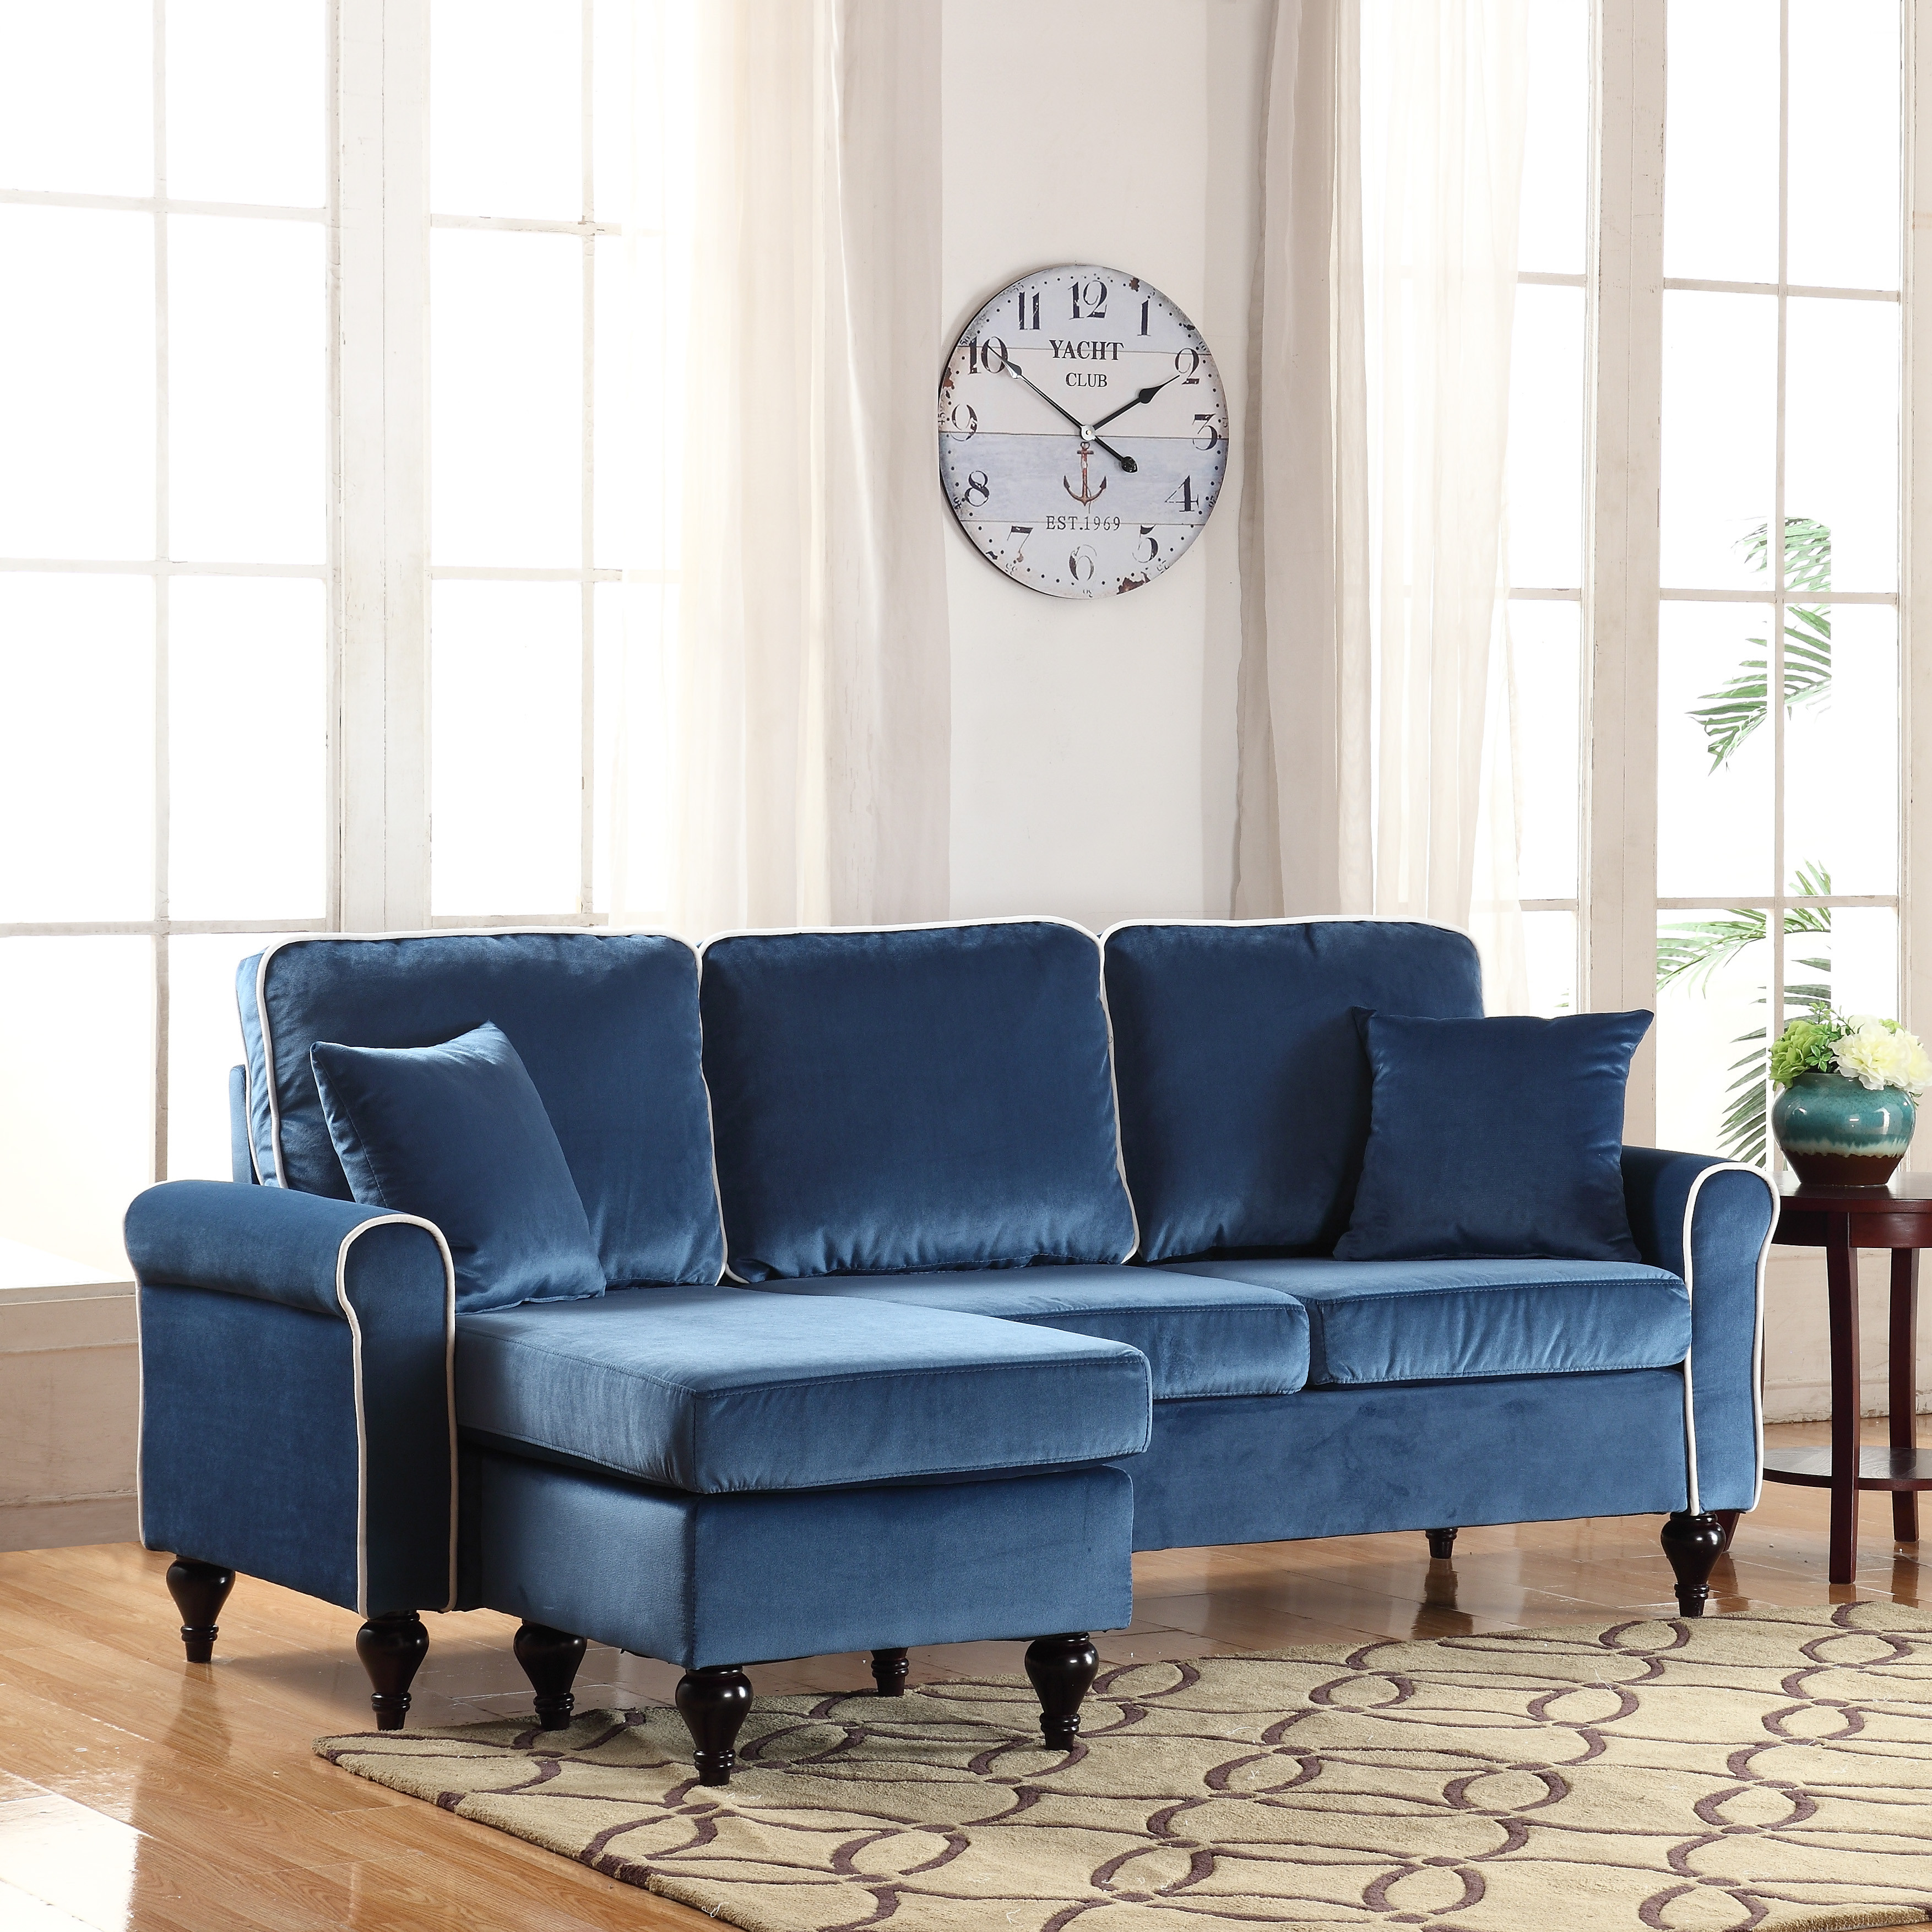 Best ideas about Mini Sectional Sofa . Save or Pin Traditional Small Space Blue Velvet Sectional Sofa with Now.